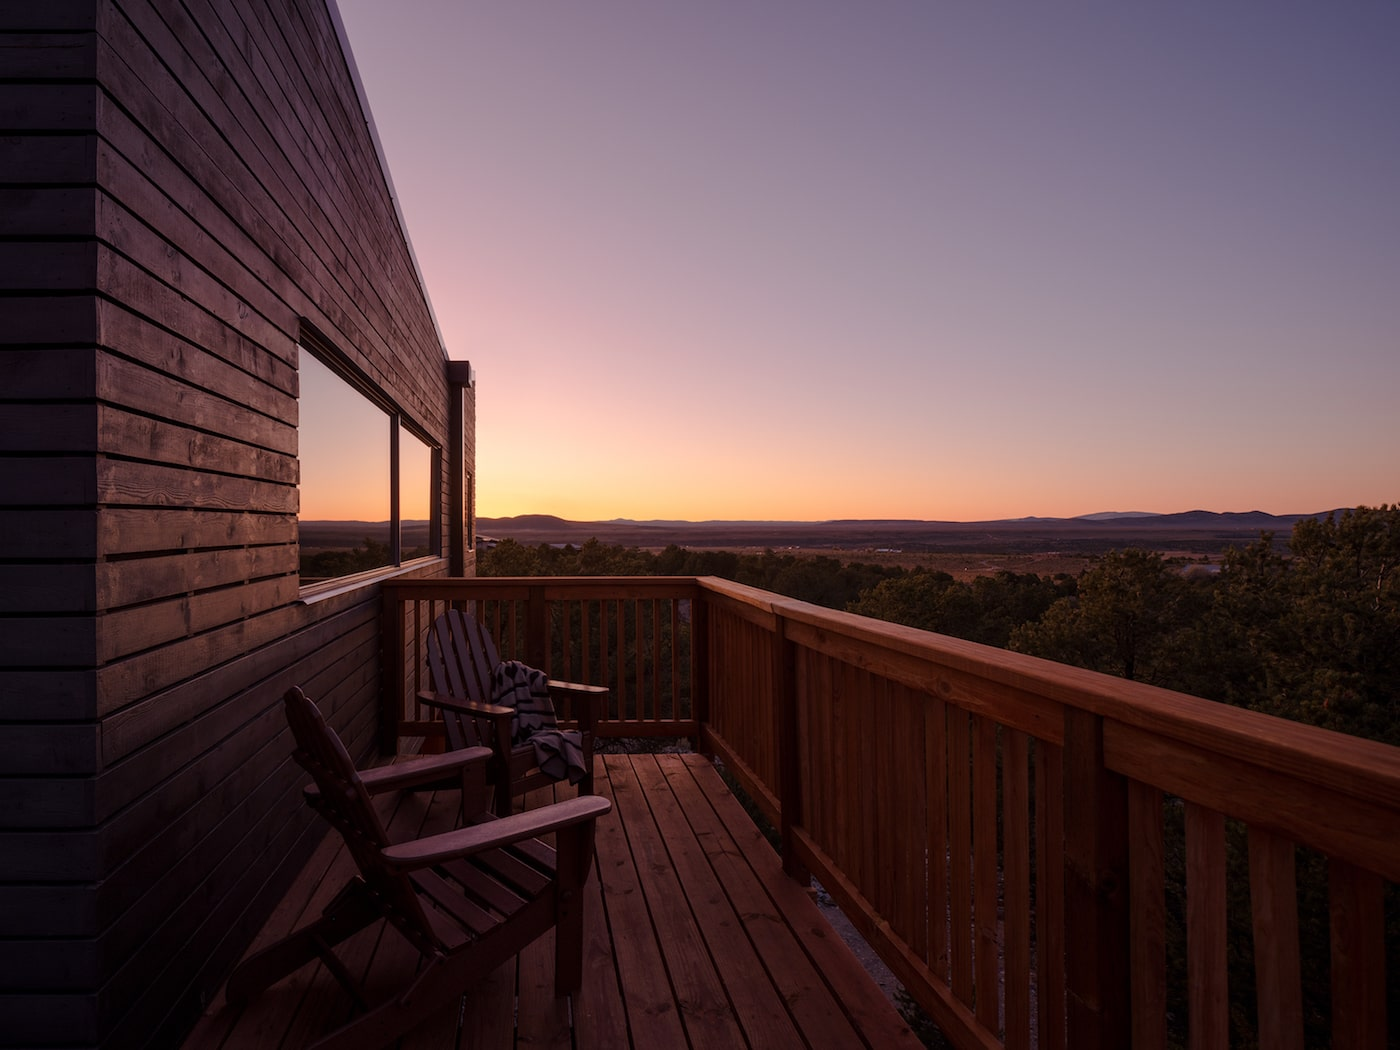 Sunset view from timber deck of super-insulated low-tox home